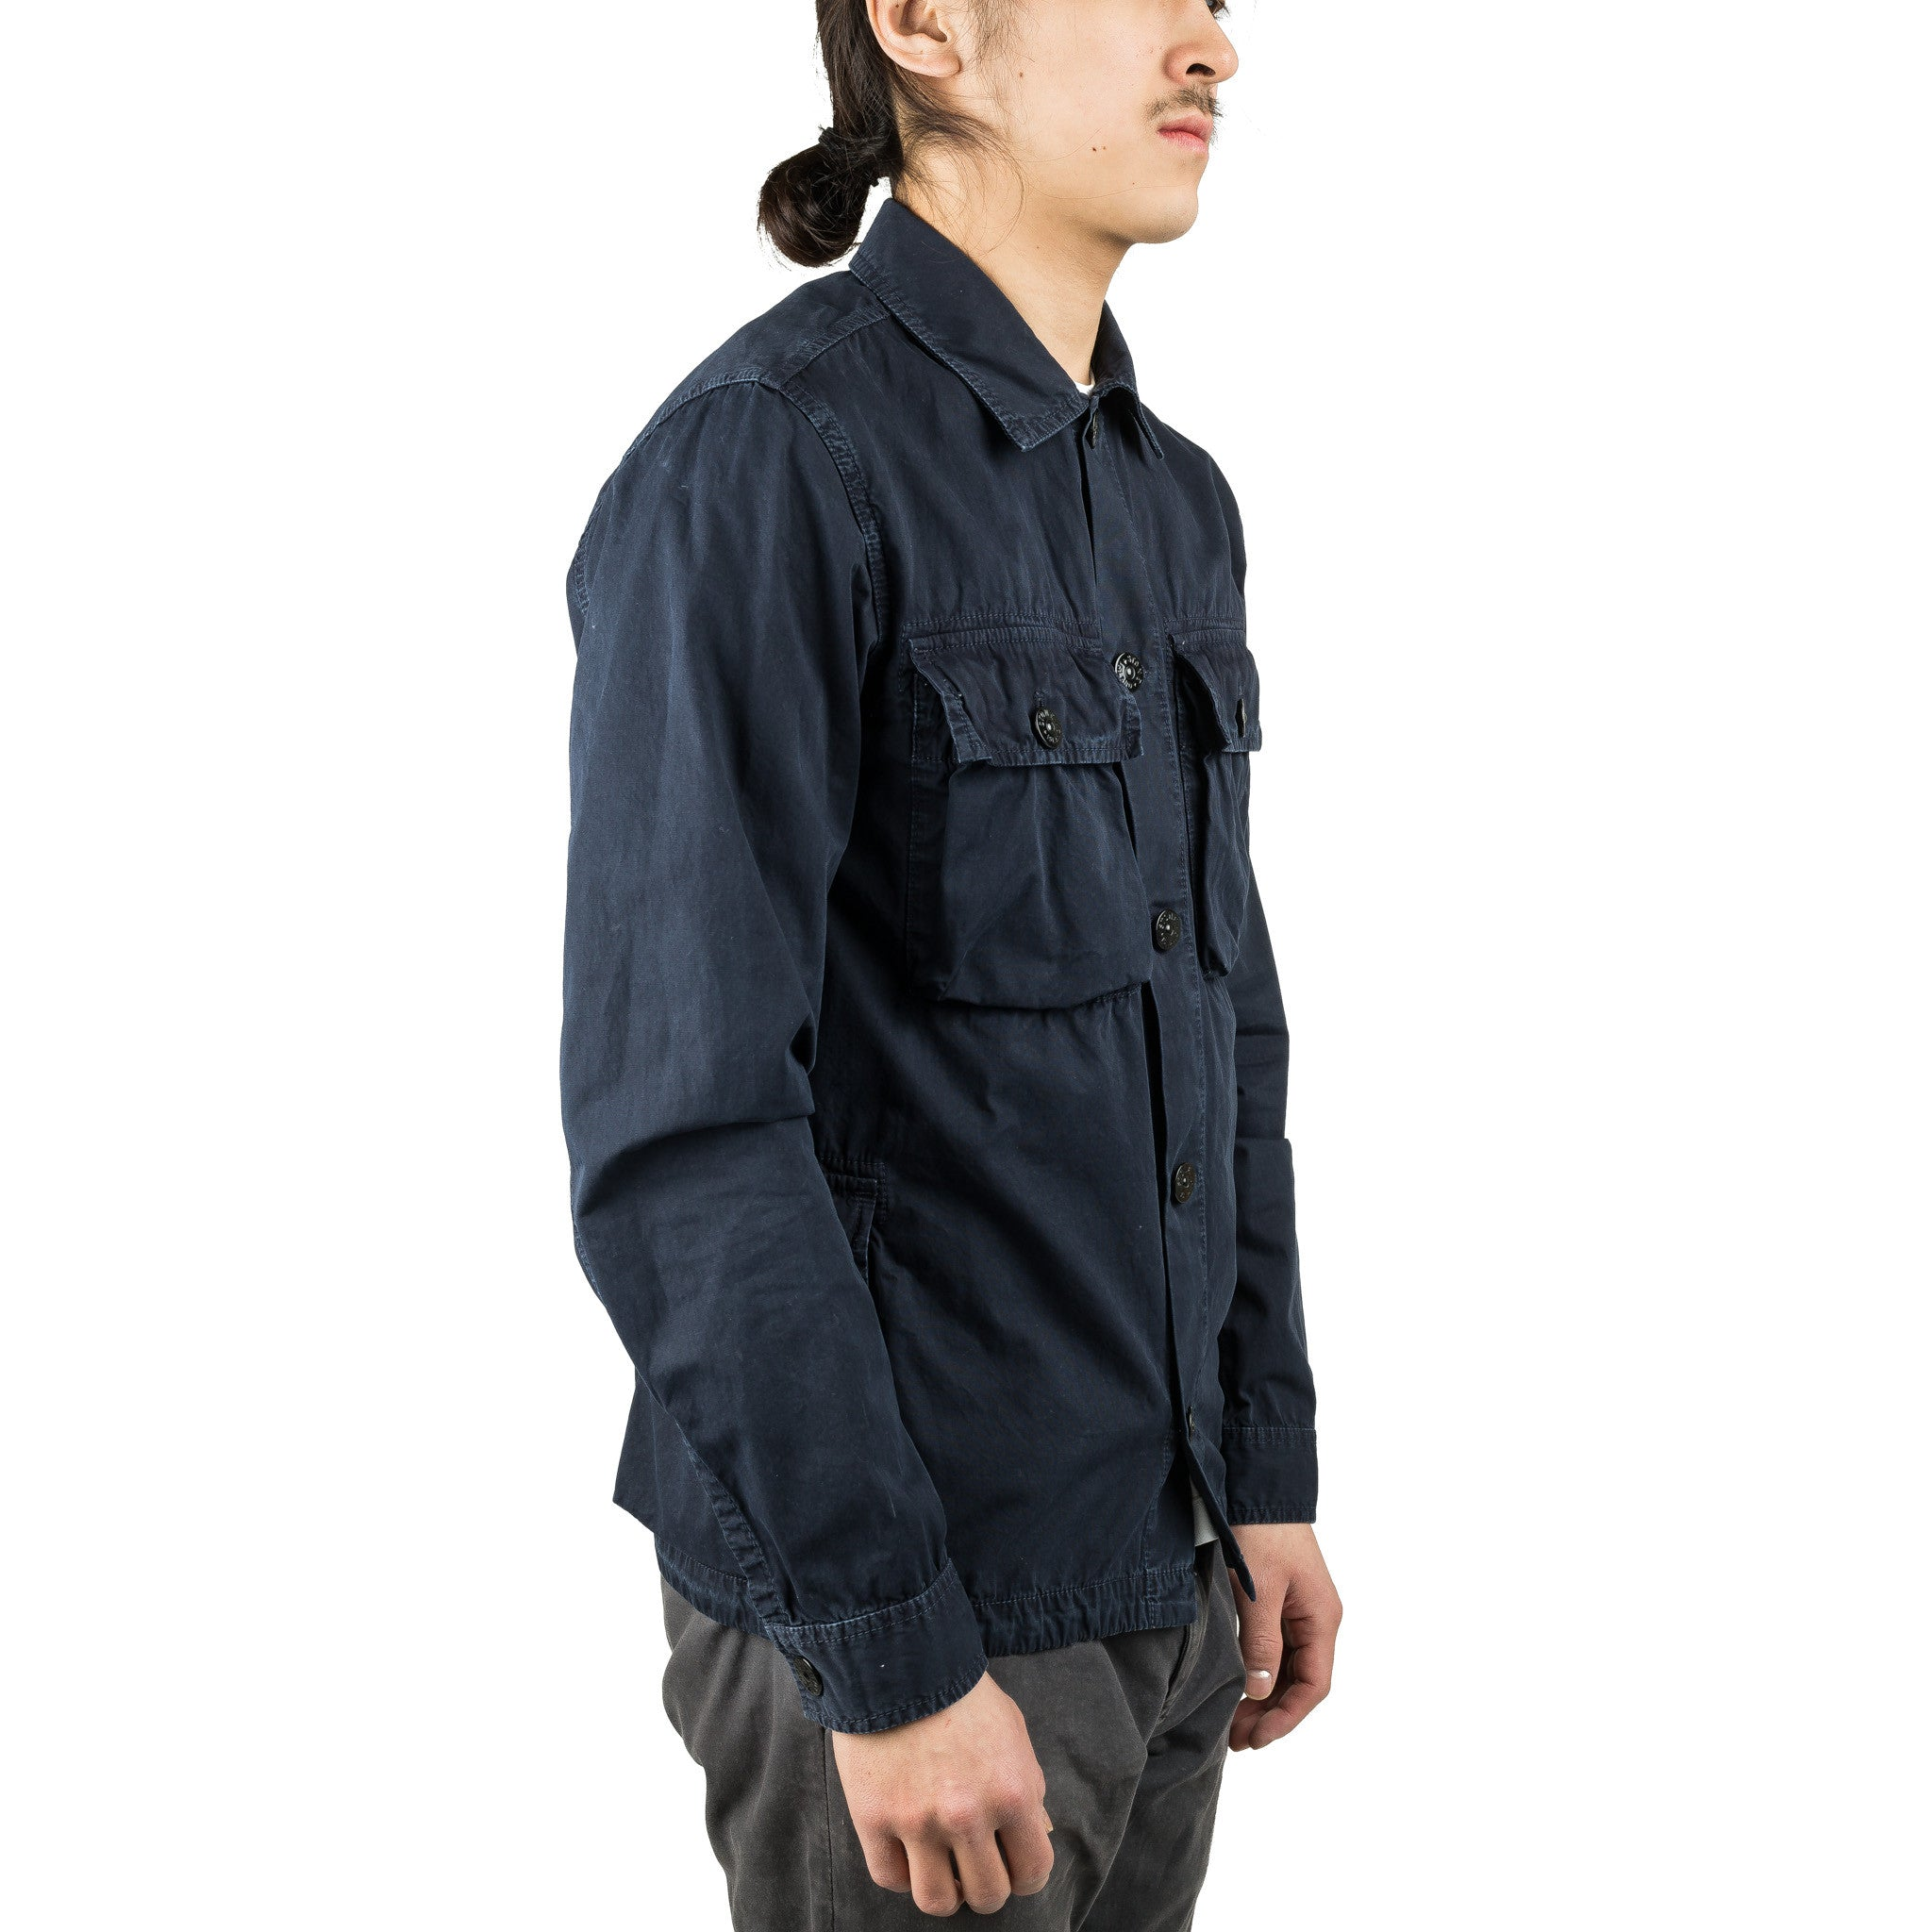 Tela Pocket Overshirt 6615119WN Black